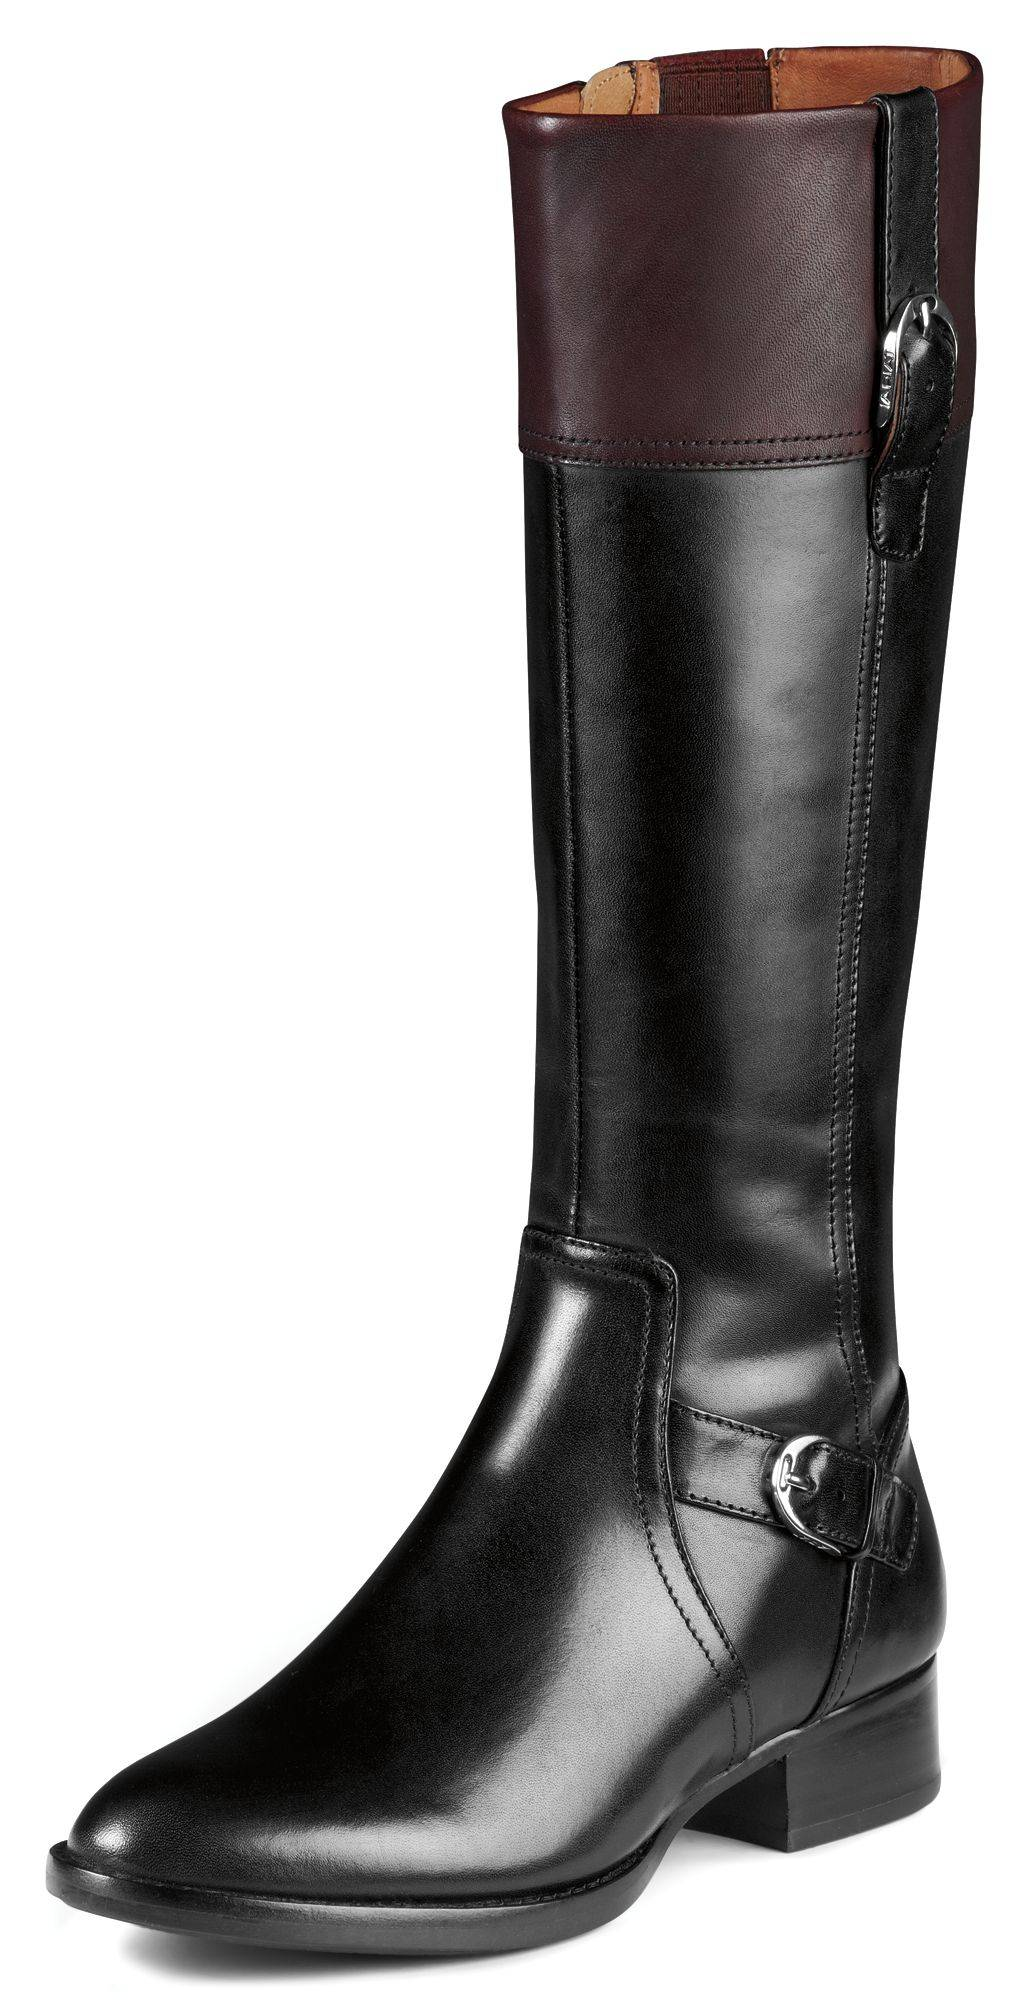 Ariat Woman's York